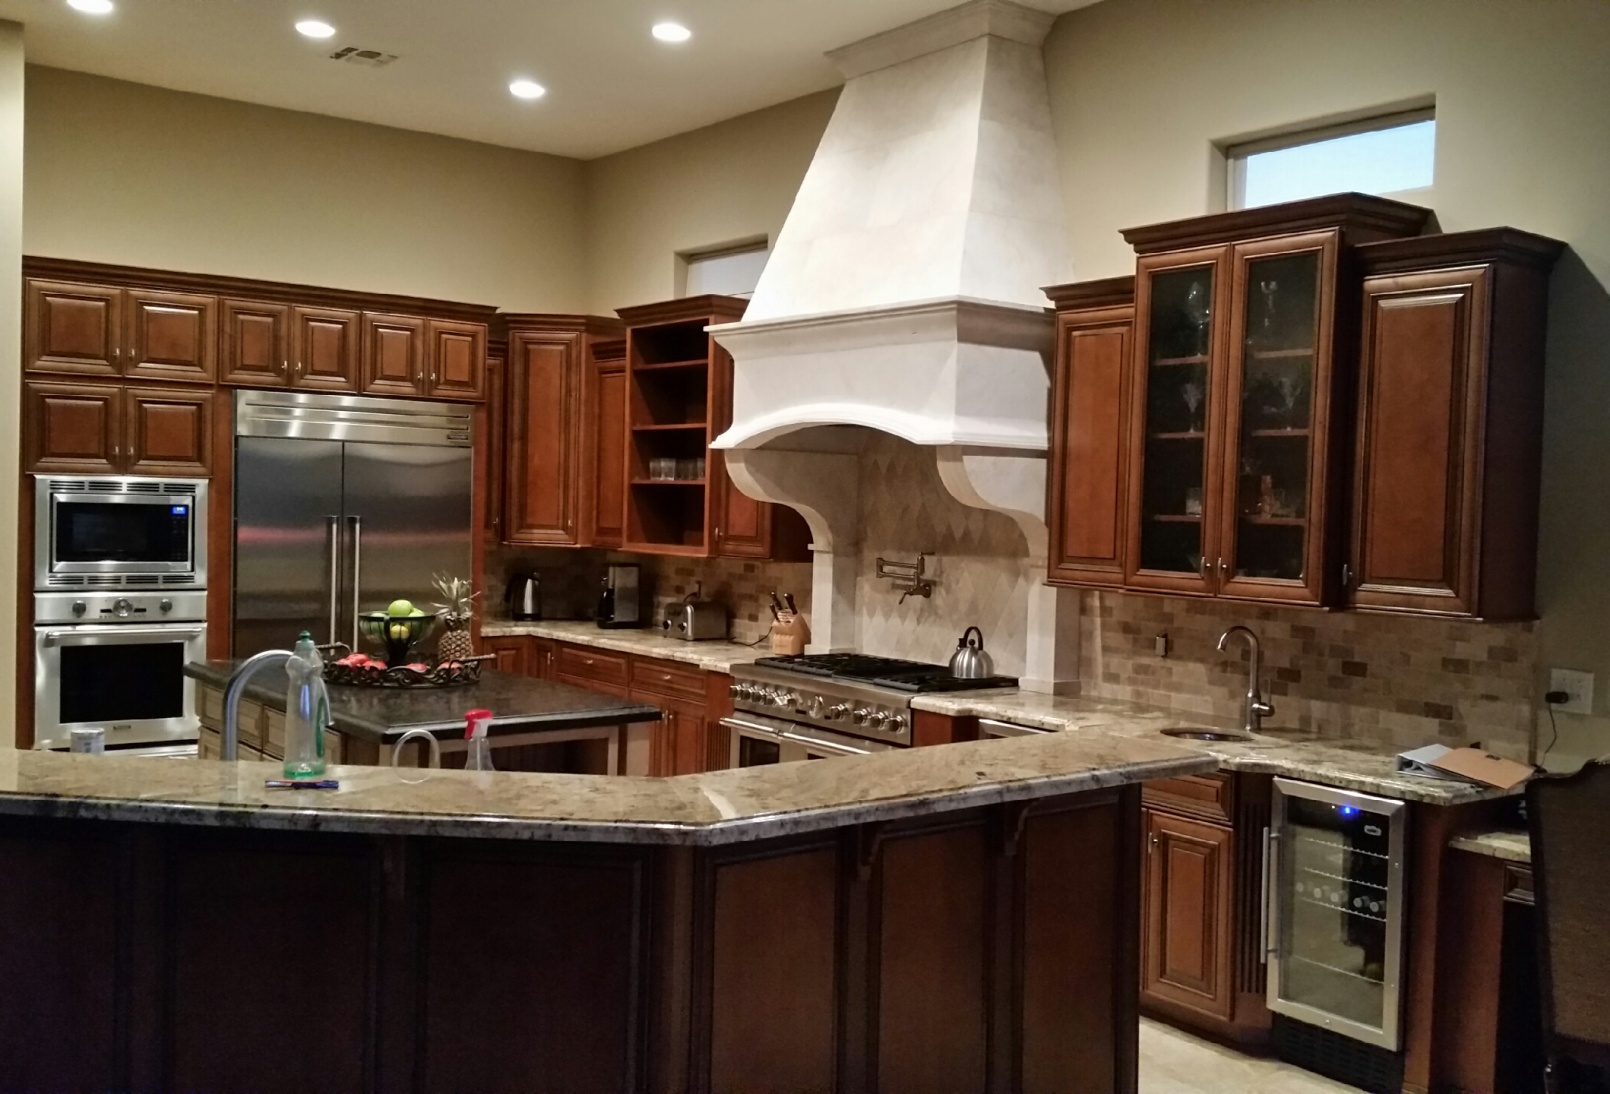 Kitchen Cabinets Authorized Dealer For Phoenix Arizona Kitchen AZ LLC